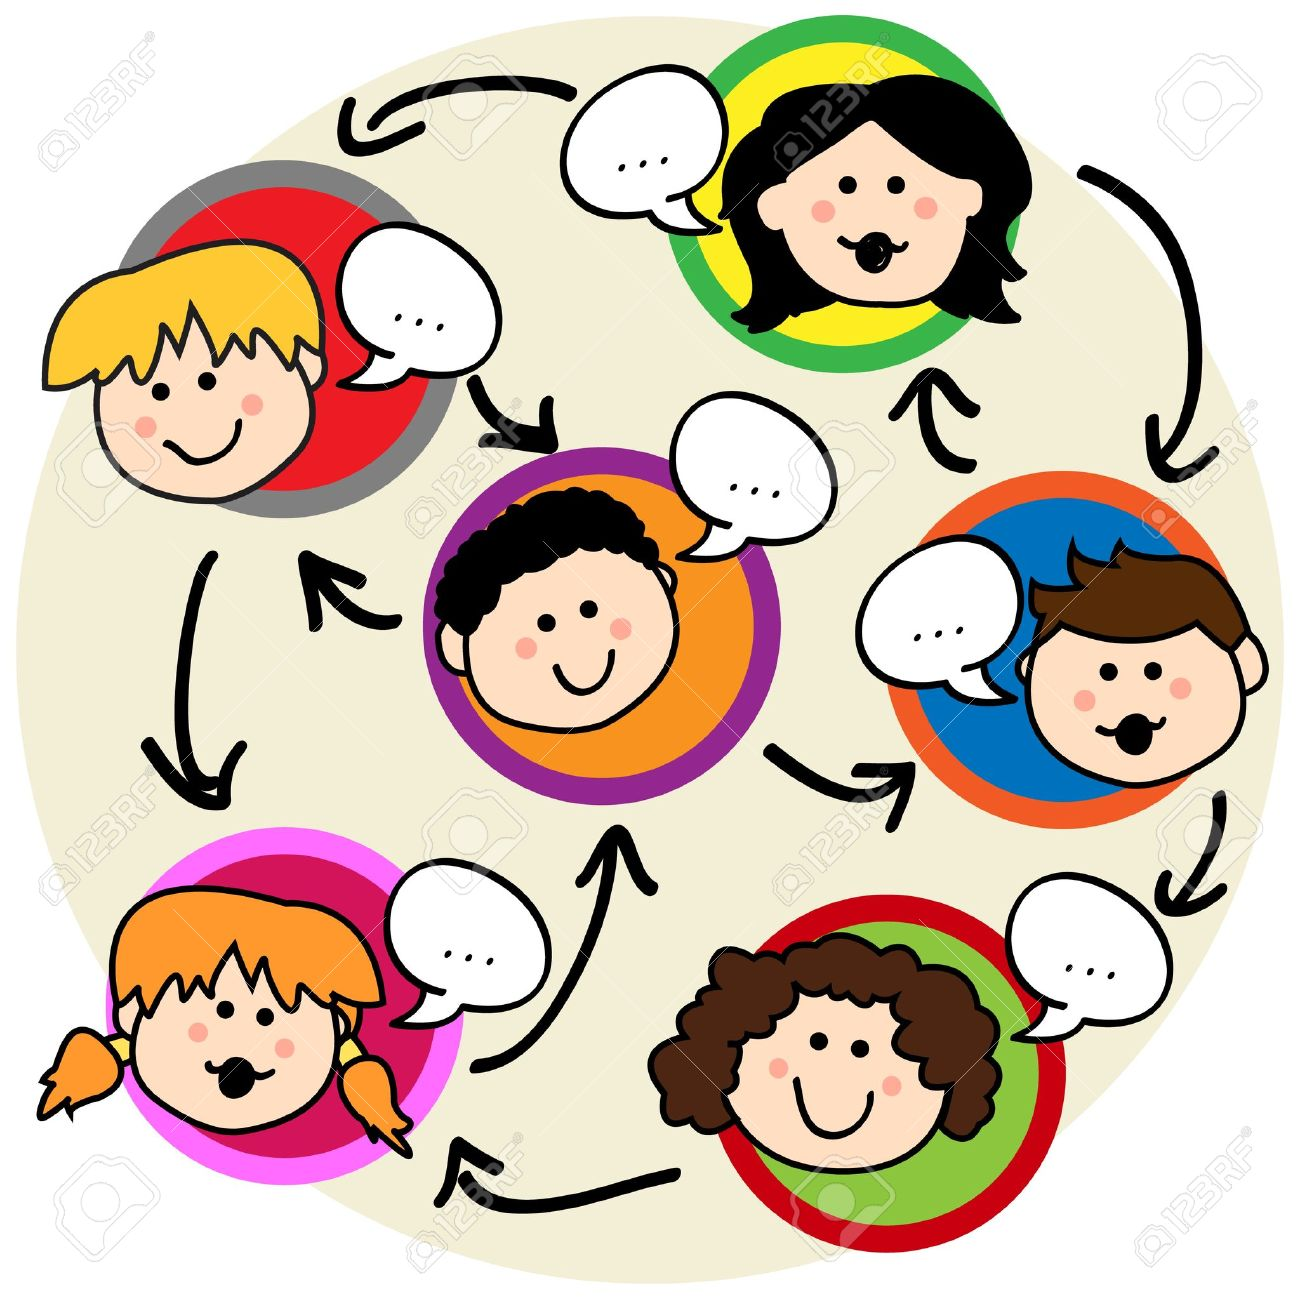 Social network concept: fun cartoon of kids talking and being interconnected - 12064224